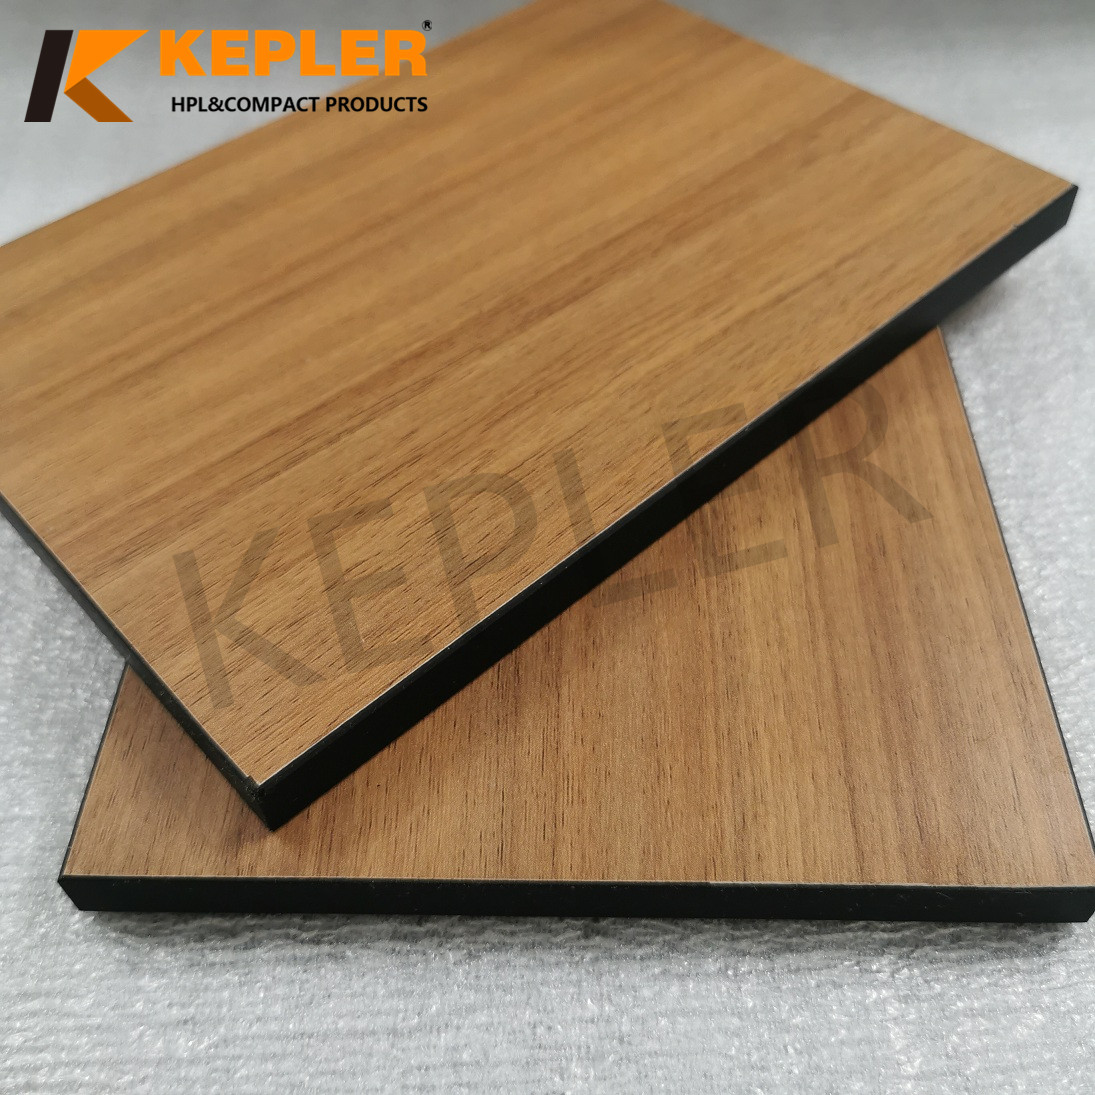 Kepler HPL Compact Laminate Board for Toilet Partition